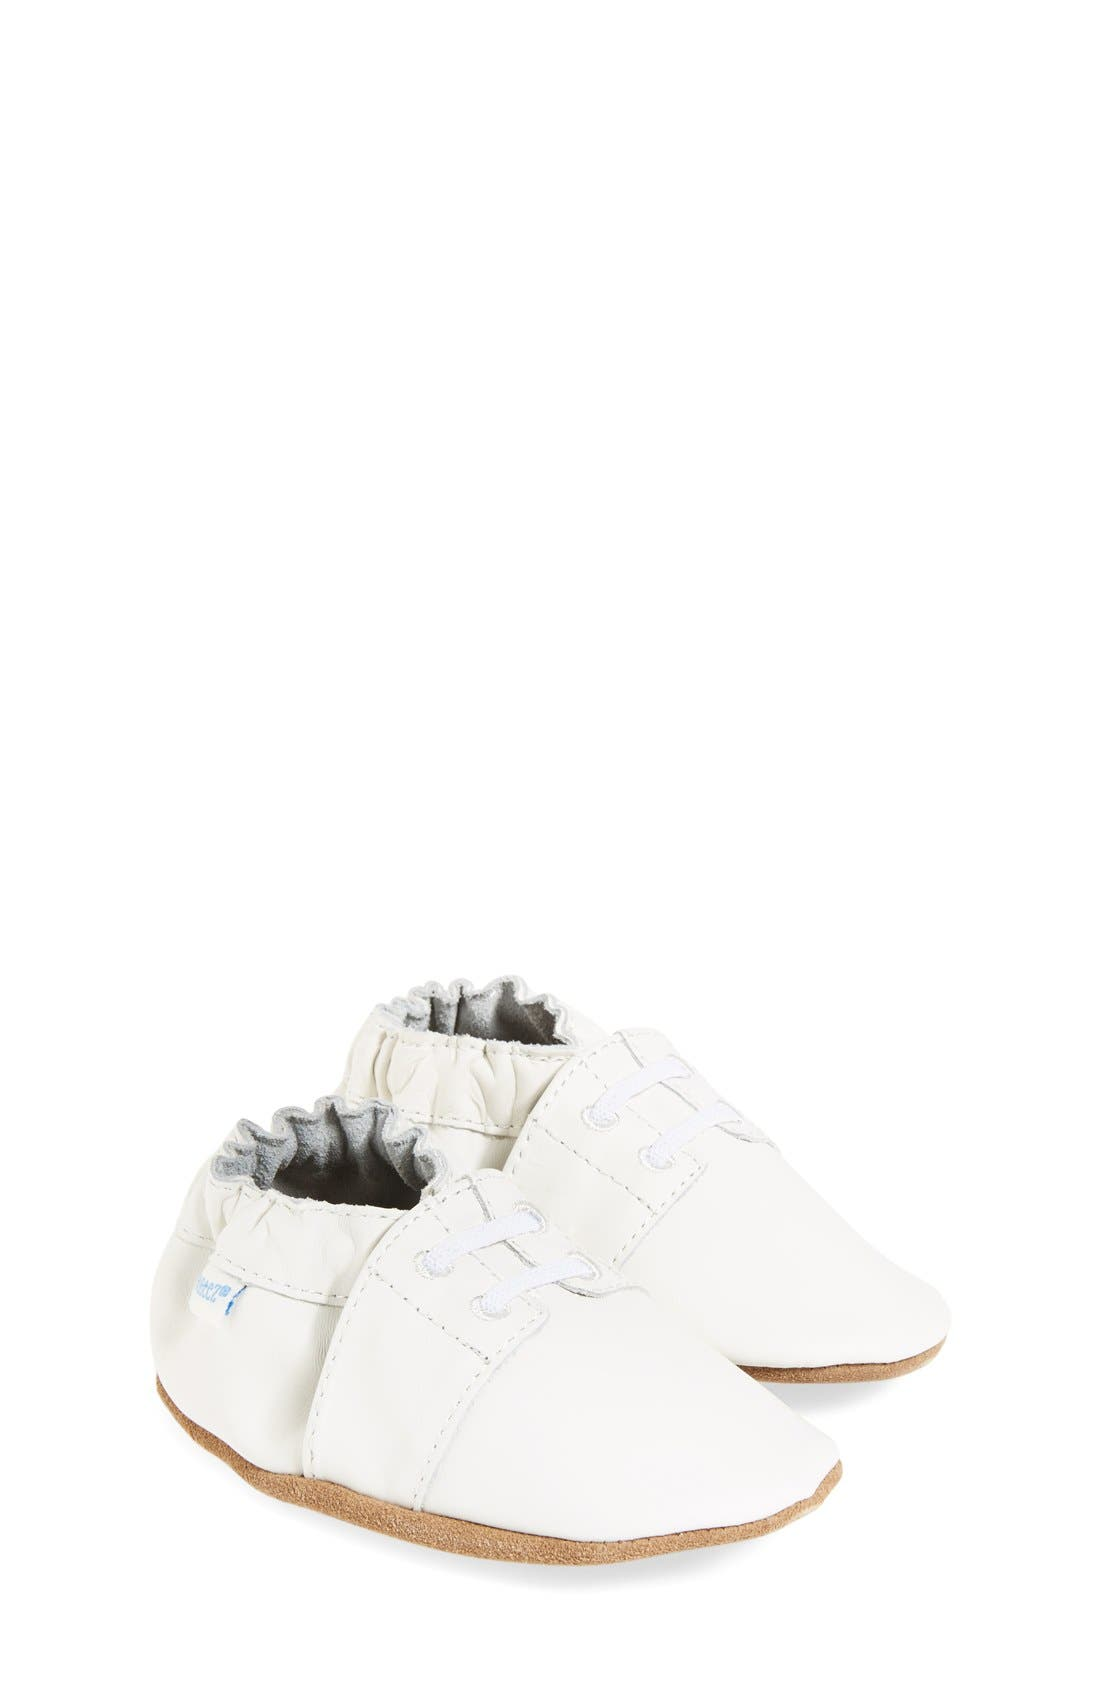 'Special Occasion' Crib Shoe,                         Main,                         color, WHITE